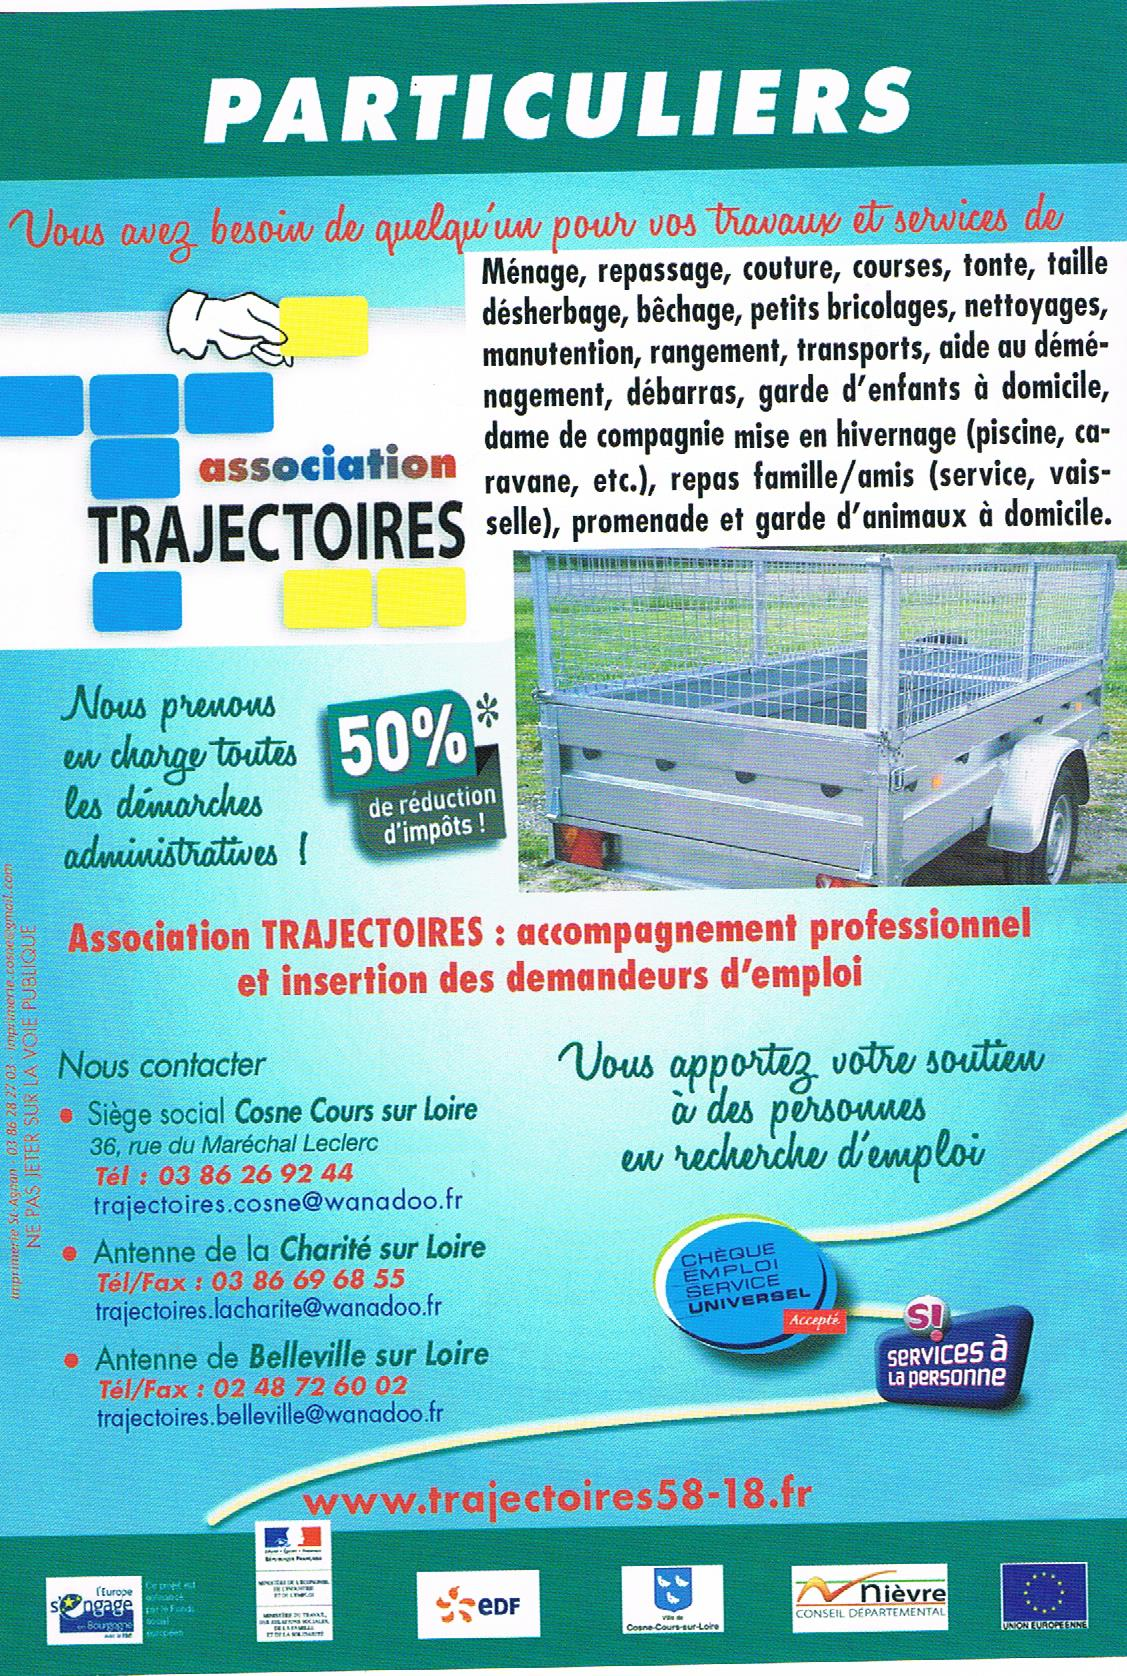 Particuliers 2019 2